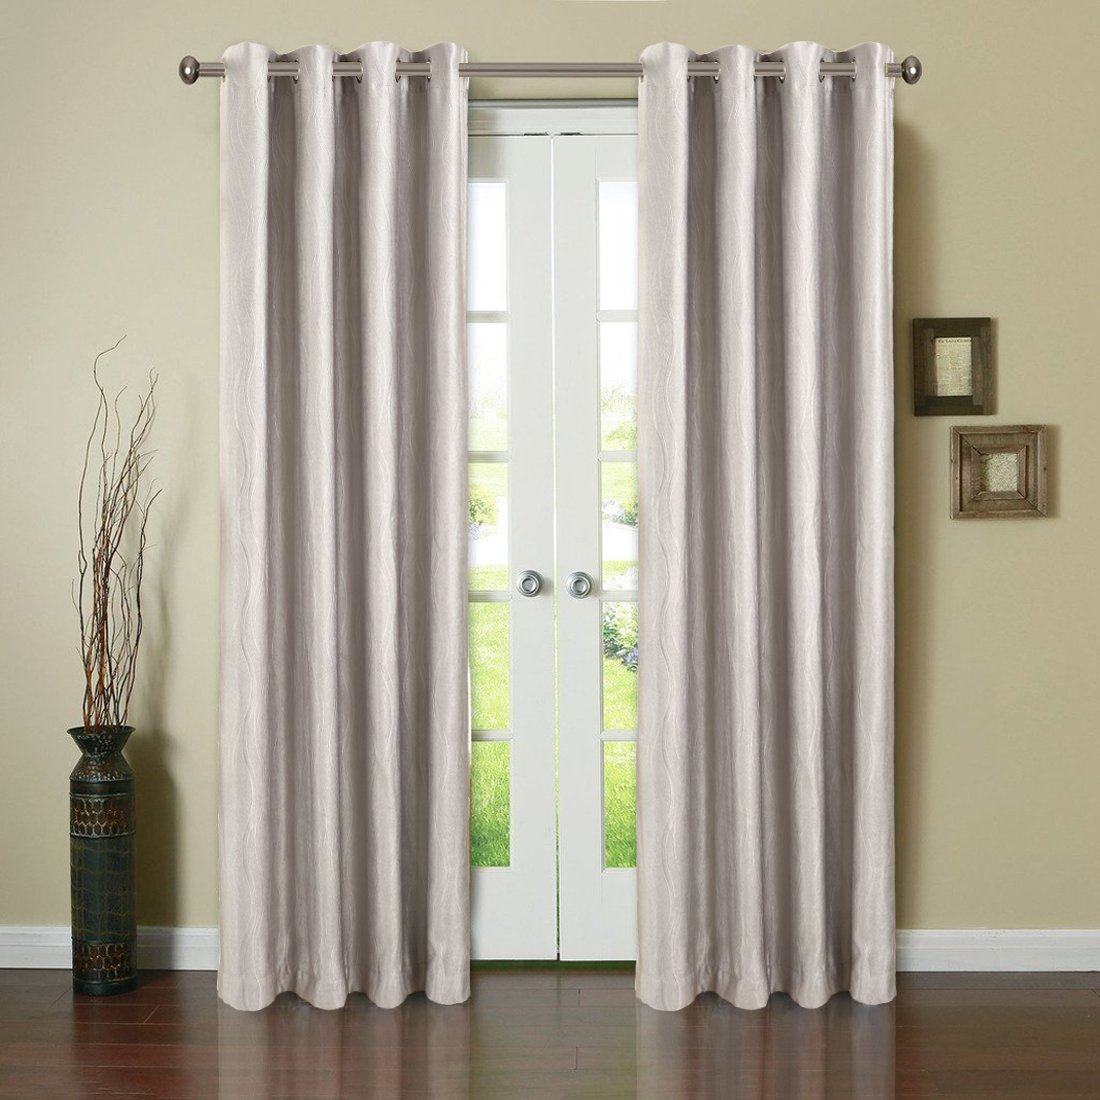 BLC 2 Panels Thermal Insulated Solid Grommet 52-Inch-by-63-Inch Blackout Curtains, z-Grey - Embossing pattern